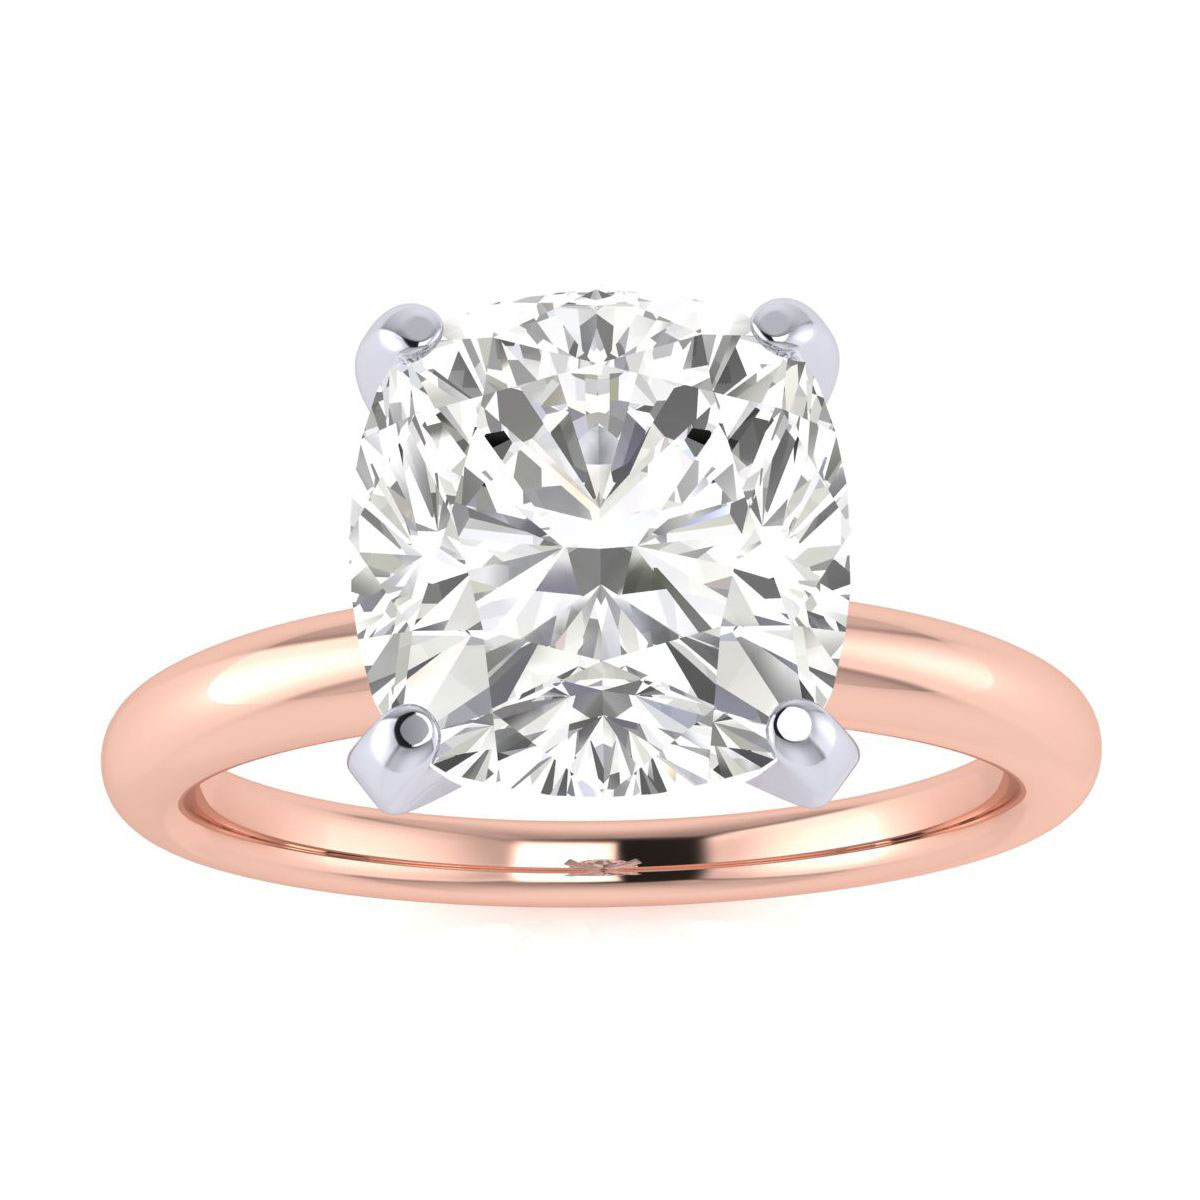 3 Carat Cushion Cut Diamond Engagement Ring in 14k Rose Gold (6.2